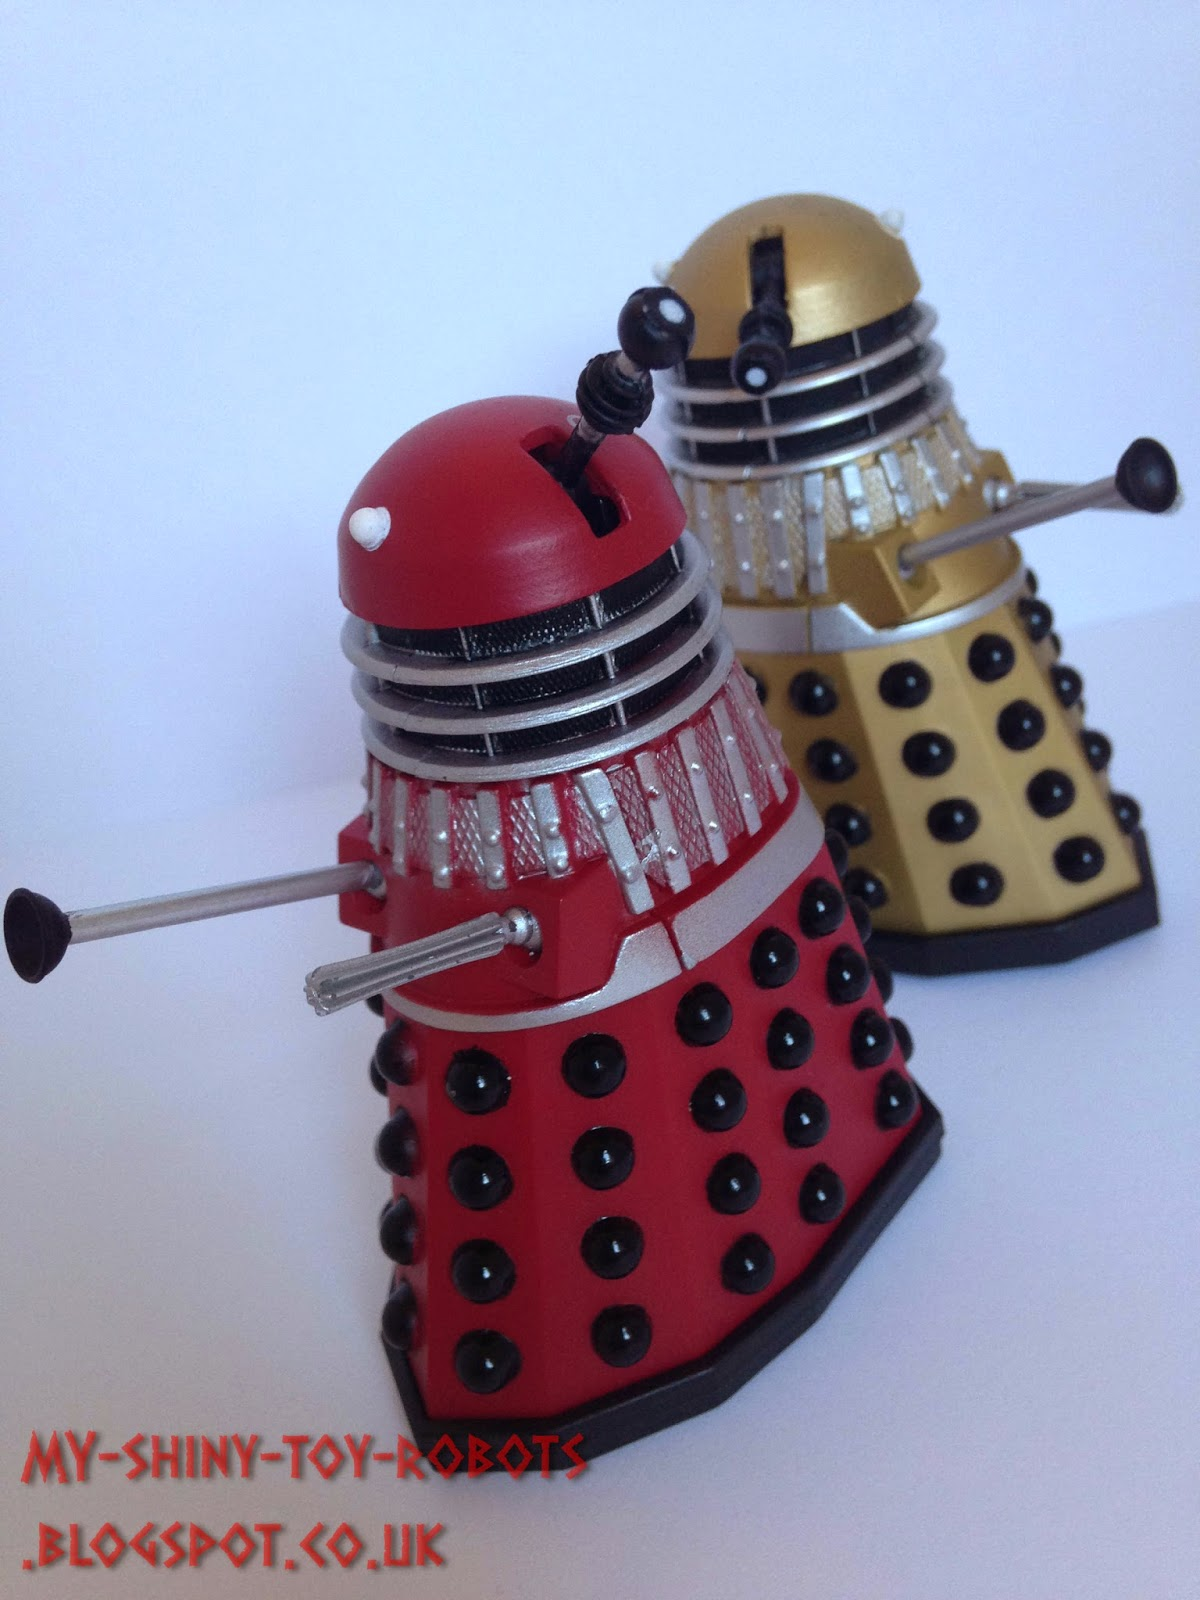 Daleks together